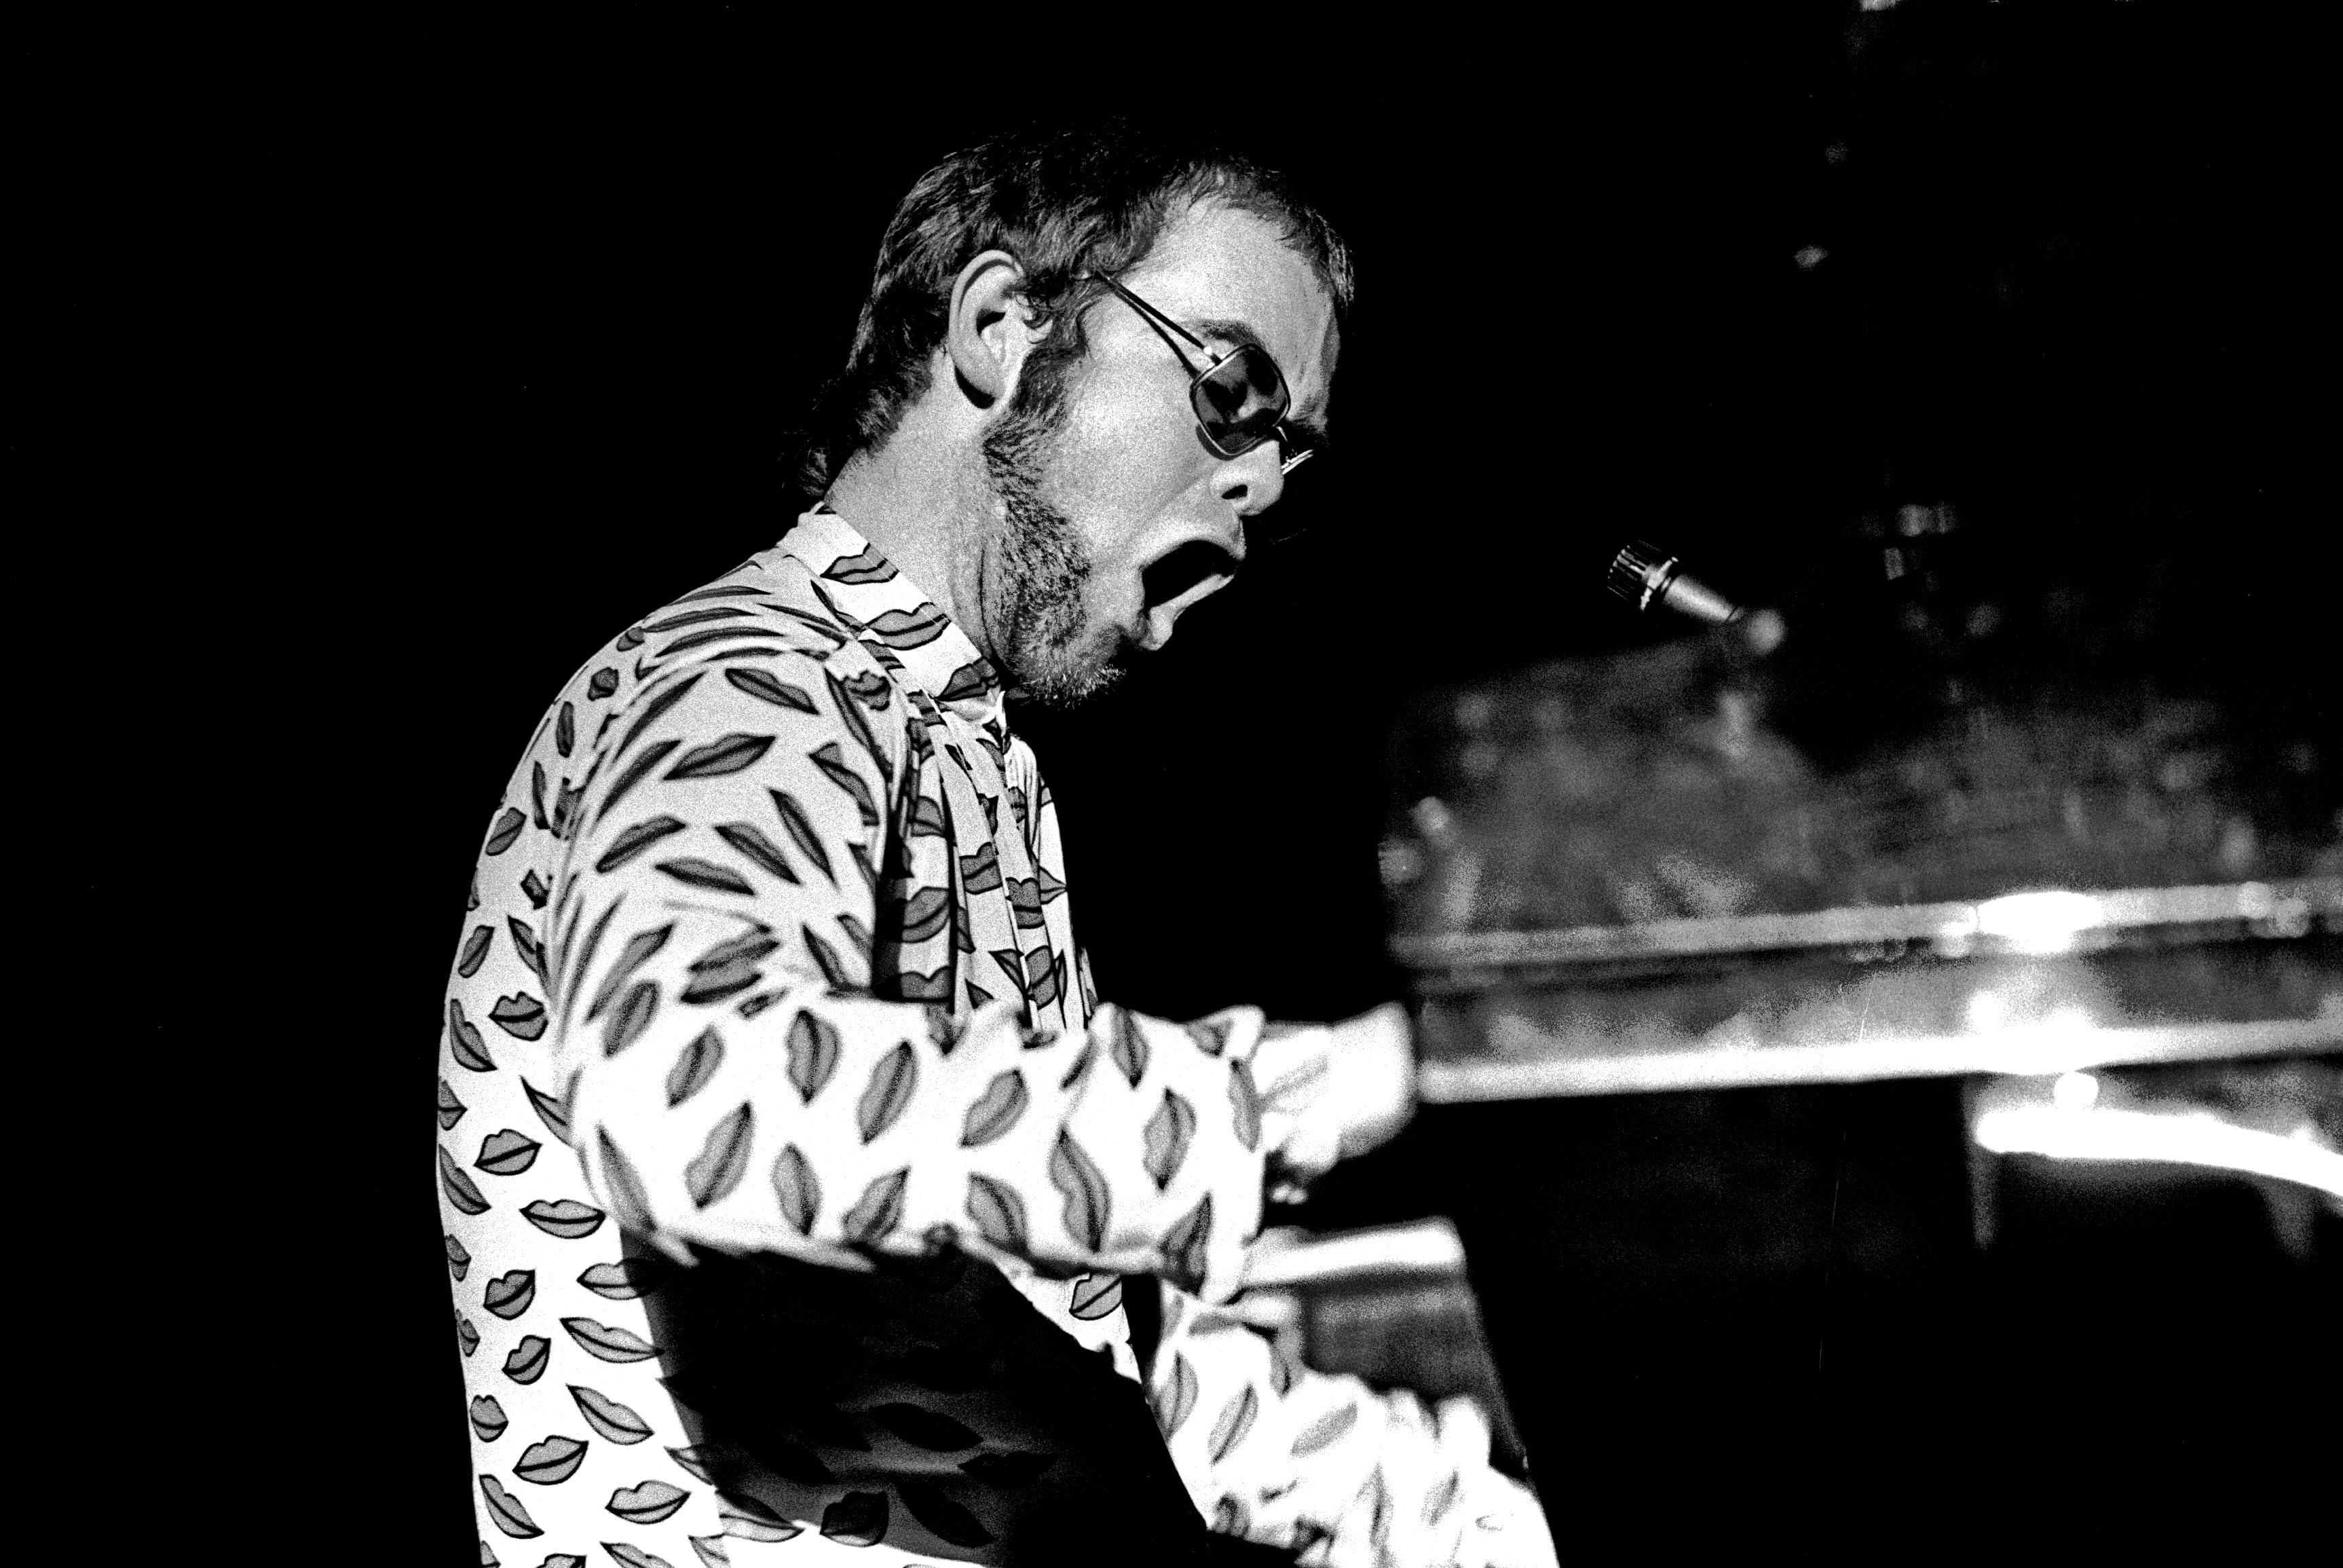 Elton John Singer Musician Performance Bw   Stock Photos 3452x2310